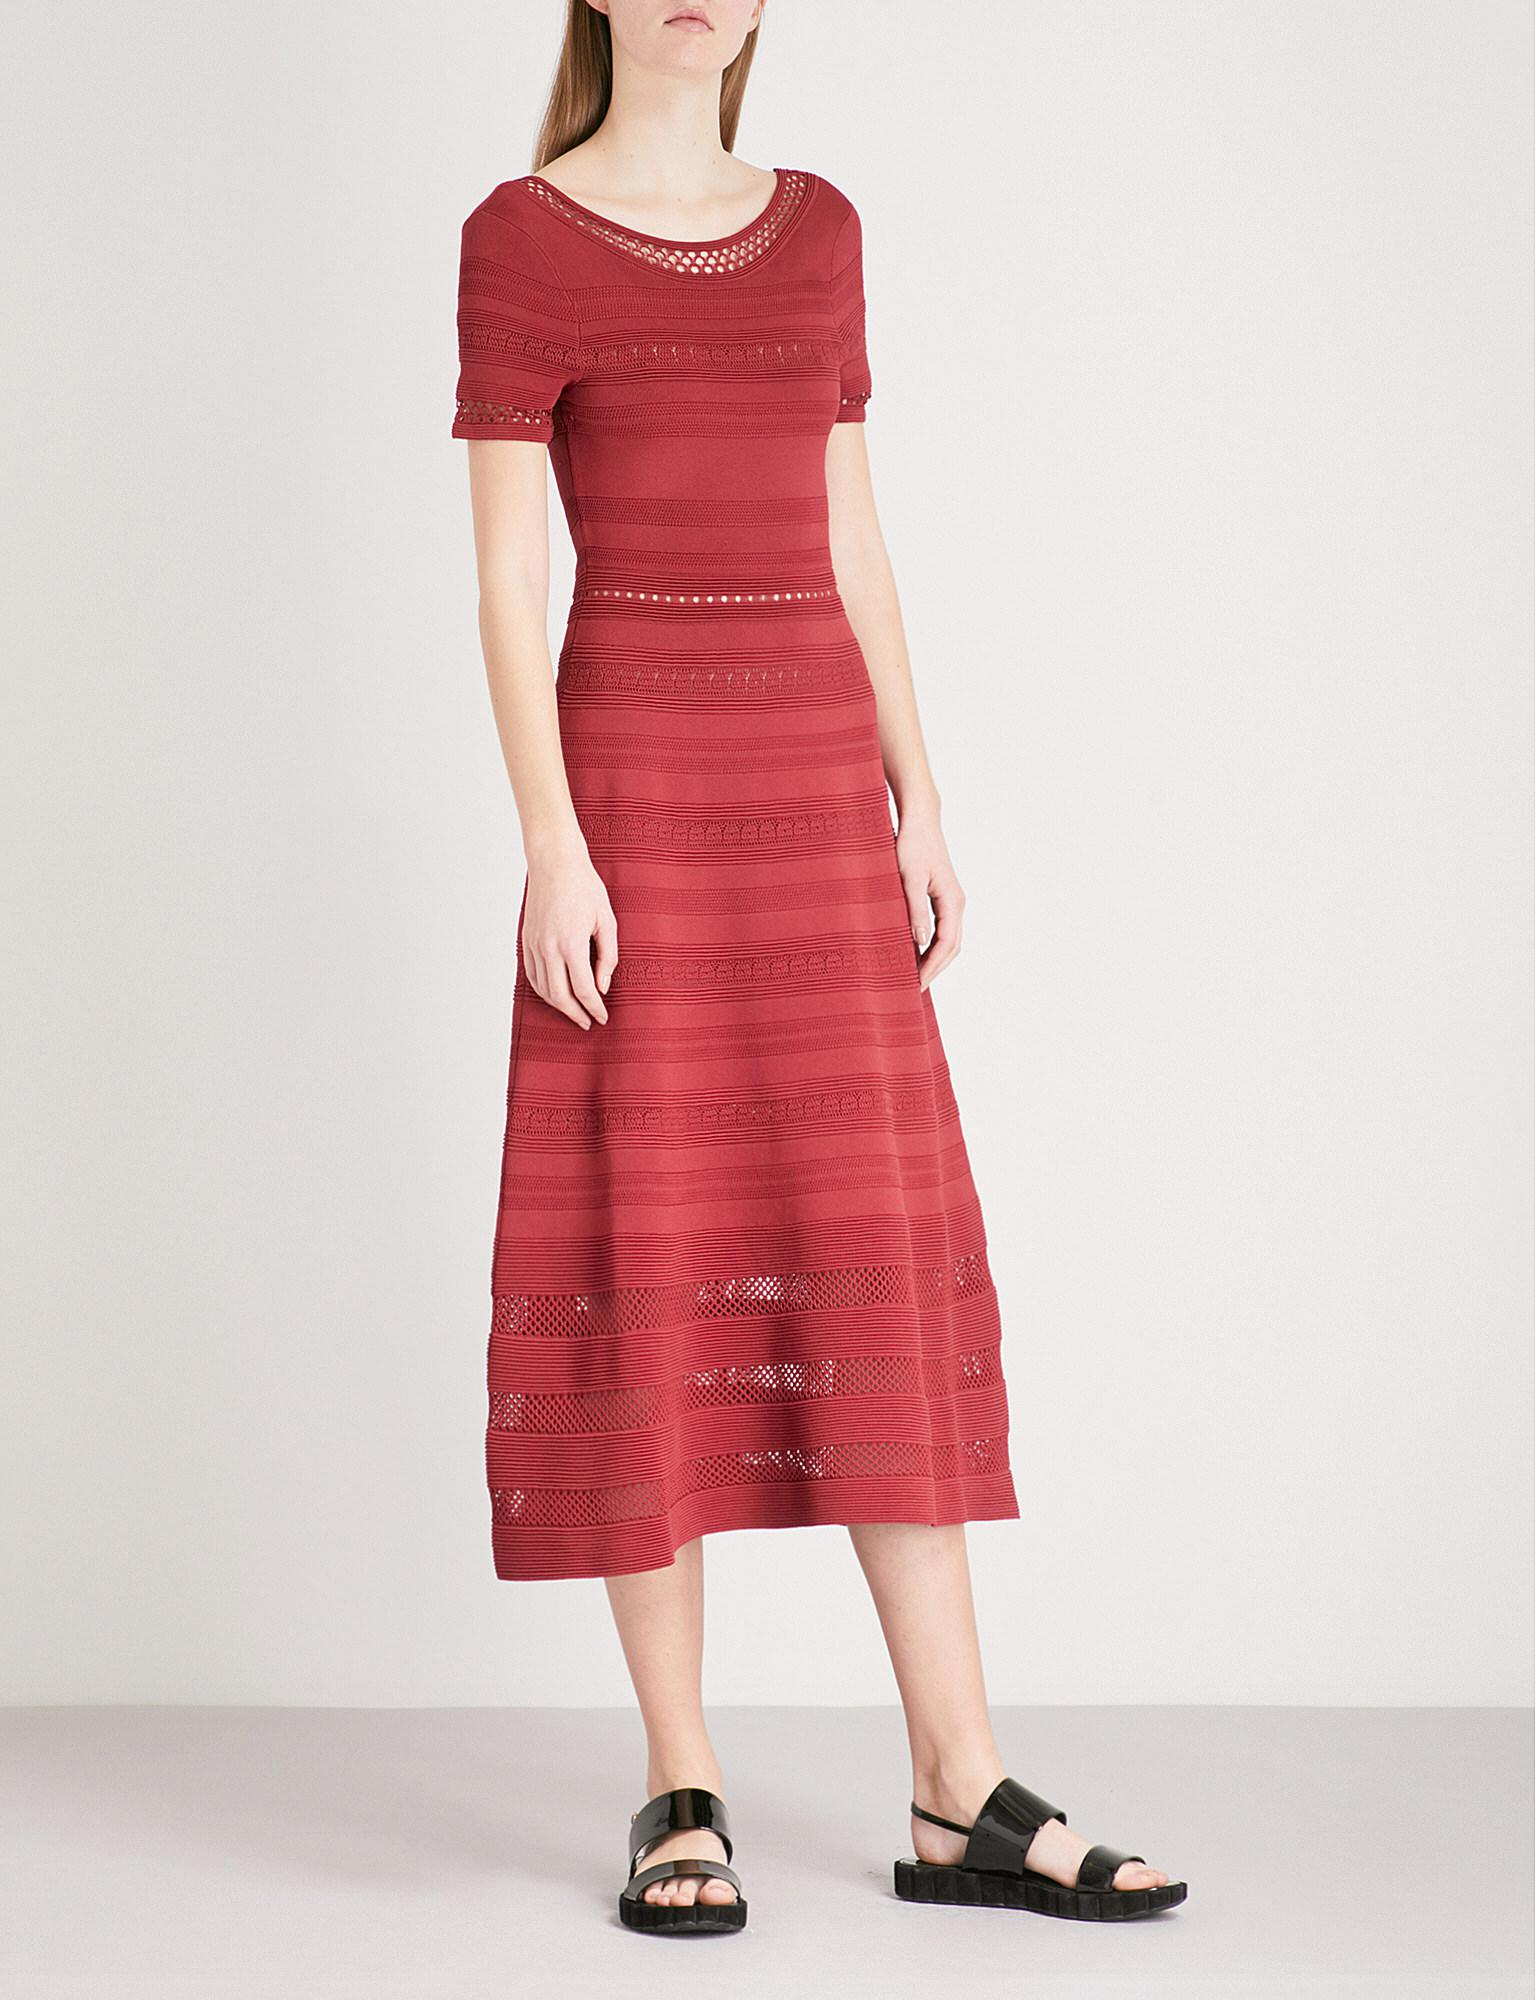 4e7405ff554 Lyst - Sandro Mesh-panelled Stretch-knit Midi Dress in Red